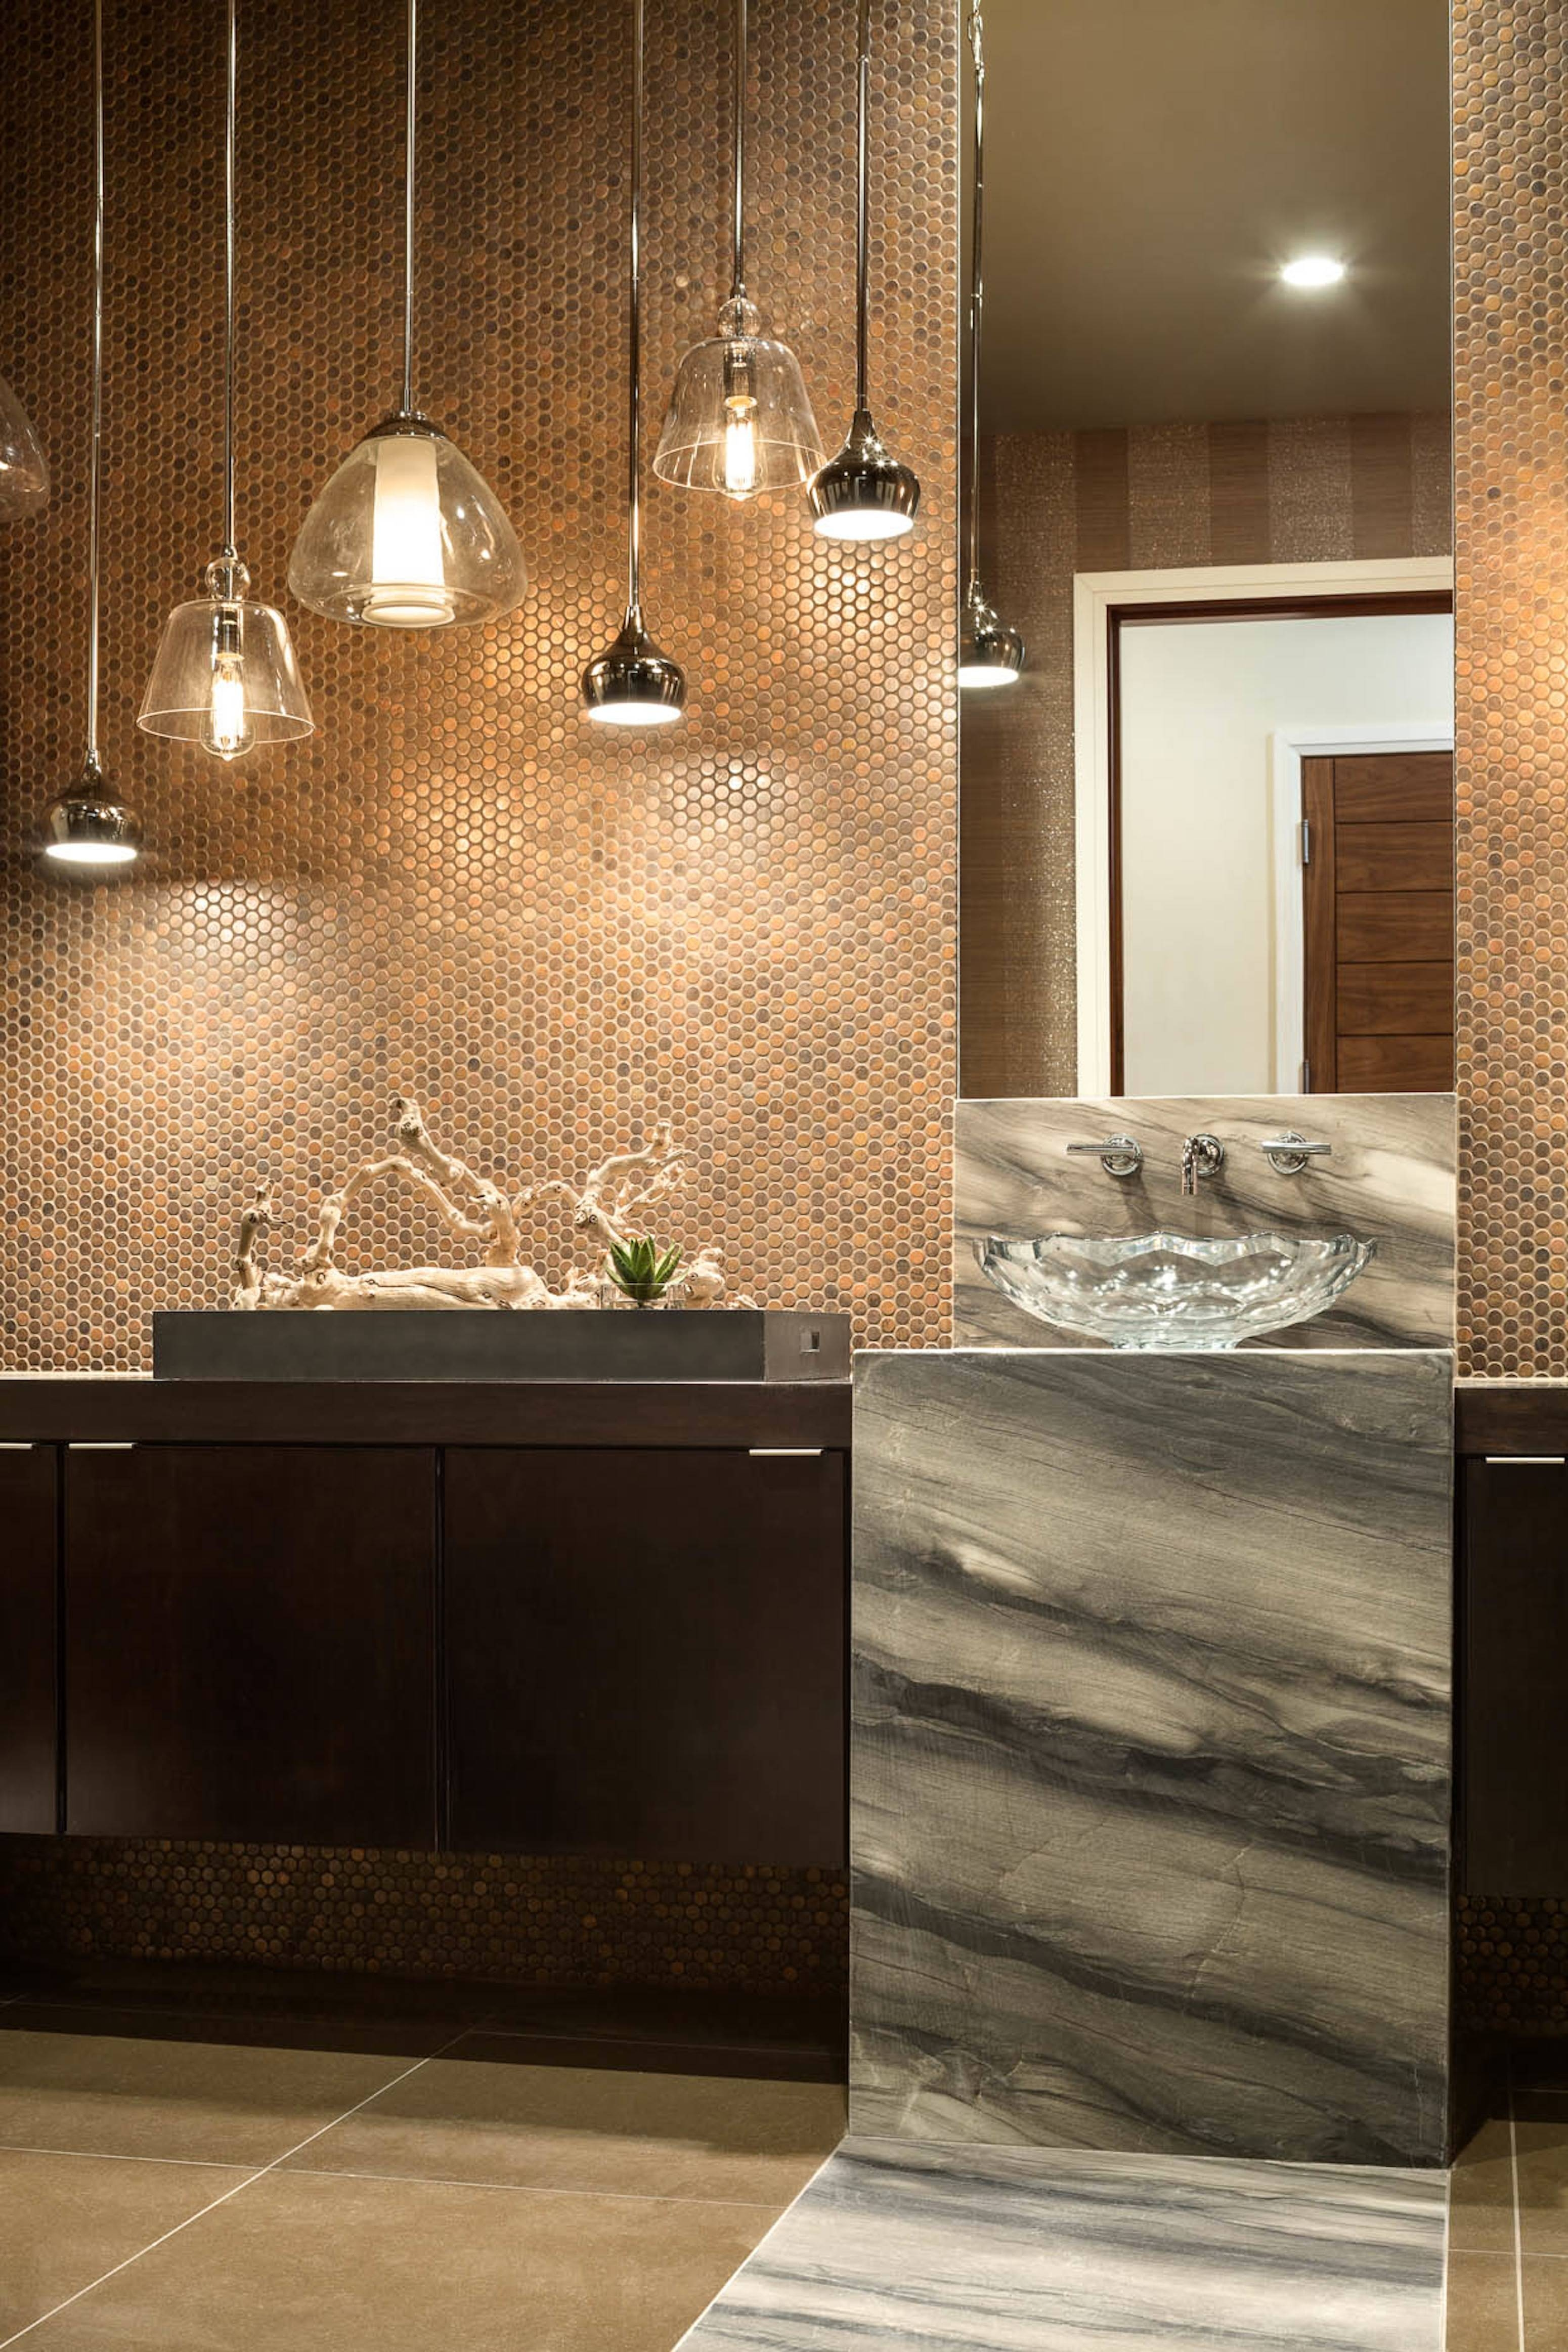 Pendant Lights For Bathroom - Baby-Exit throughout Mini Pendant Lights for Bathroom (Image 13 of 15)